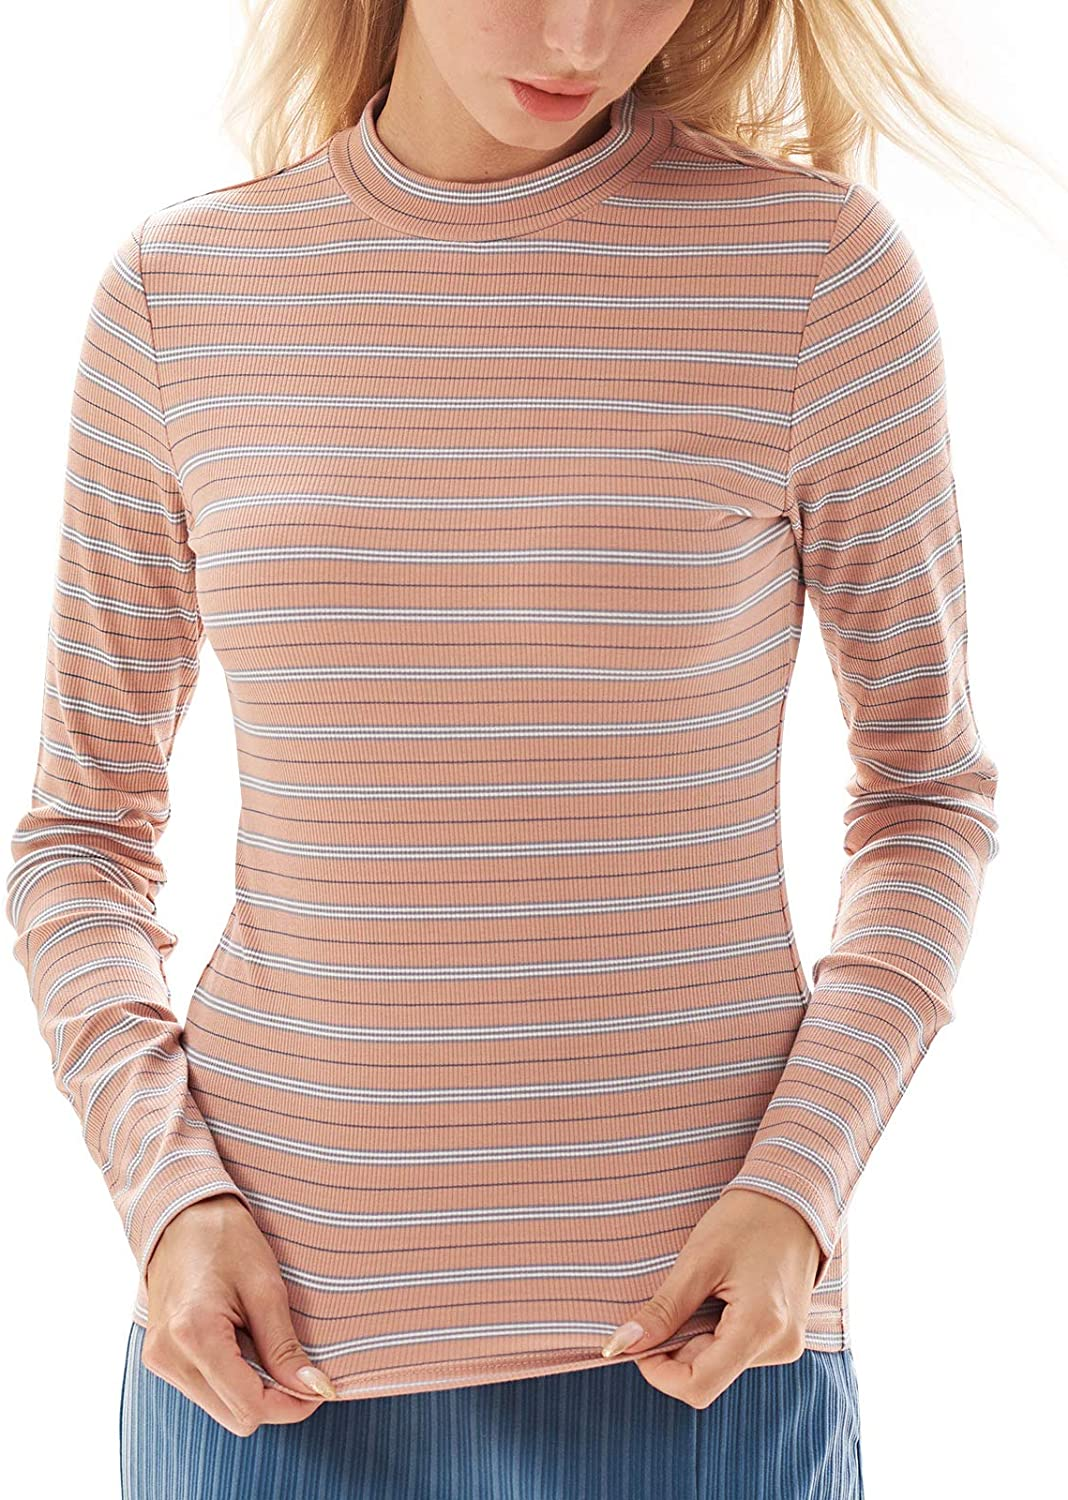 Mock Neck Tops for Women Striped Long Sleeve Shirts